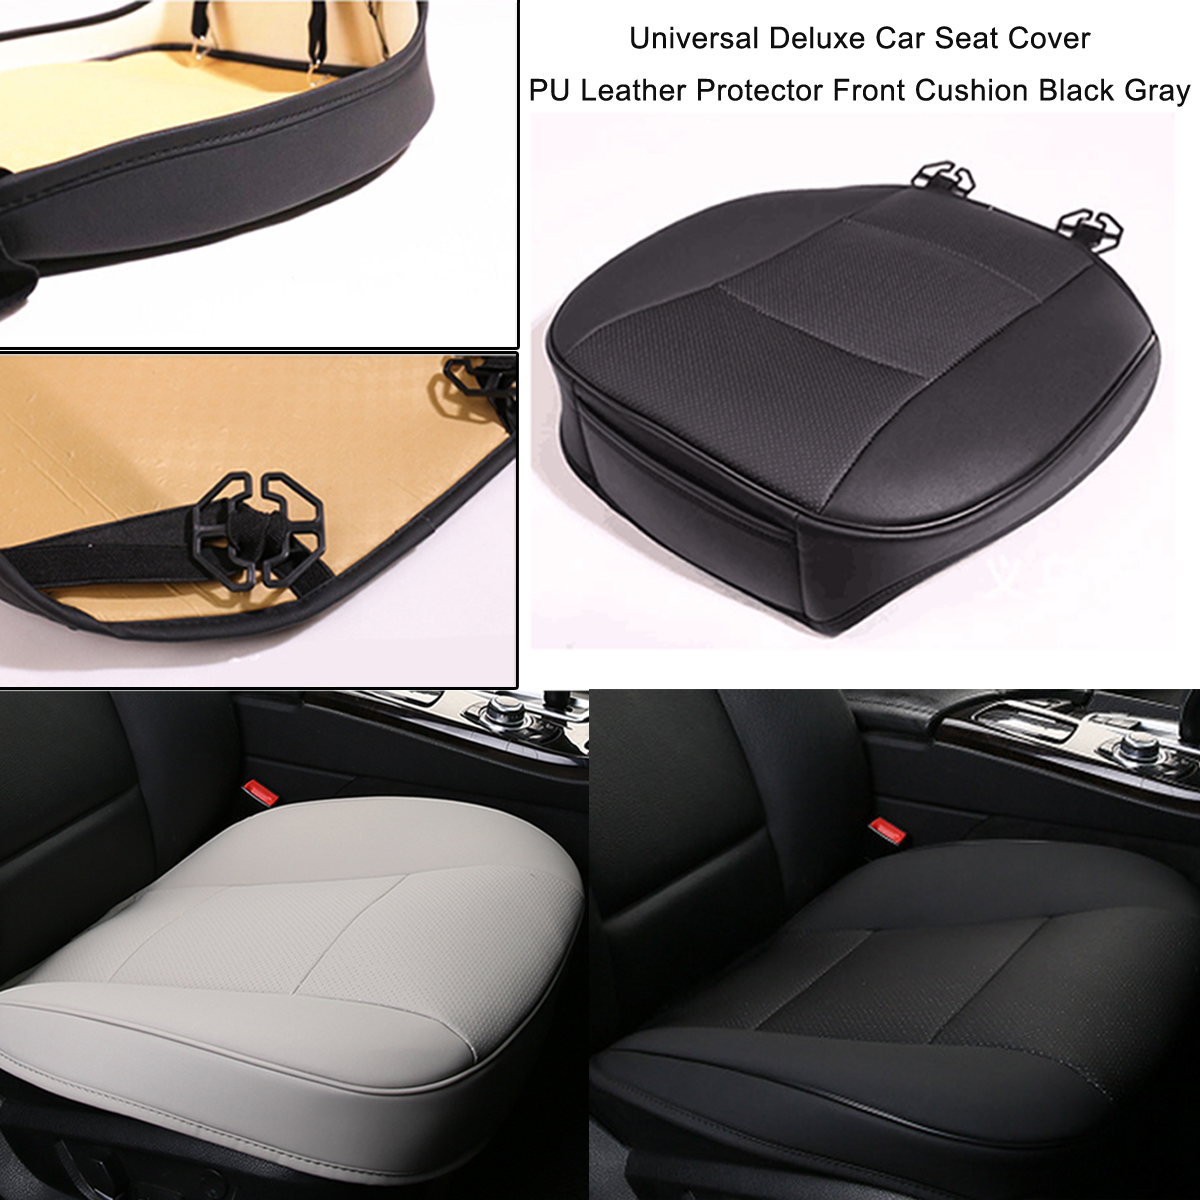 Universal Car Front Seat Soft Cover Pad PU Leather Mat Chair Cushion Black/Gray for Toyota/BMW/Nissan/Honda/VW pu leather car seat cover front and back set car cushion pad mat for nissan otti pixo pulsar primera pathfinder pino patrol